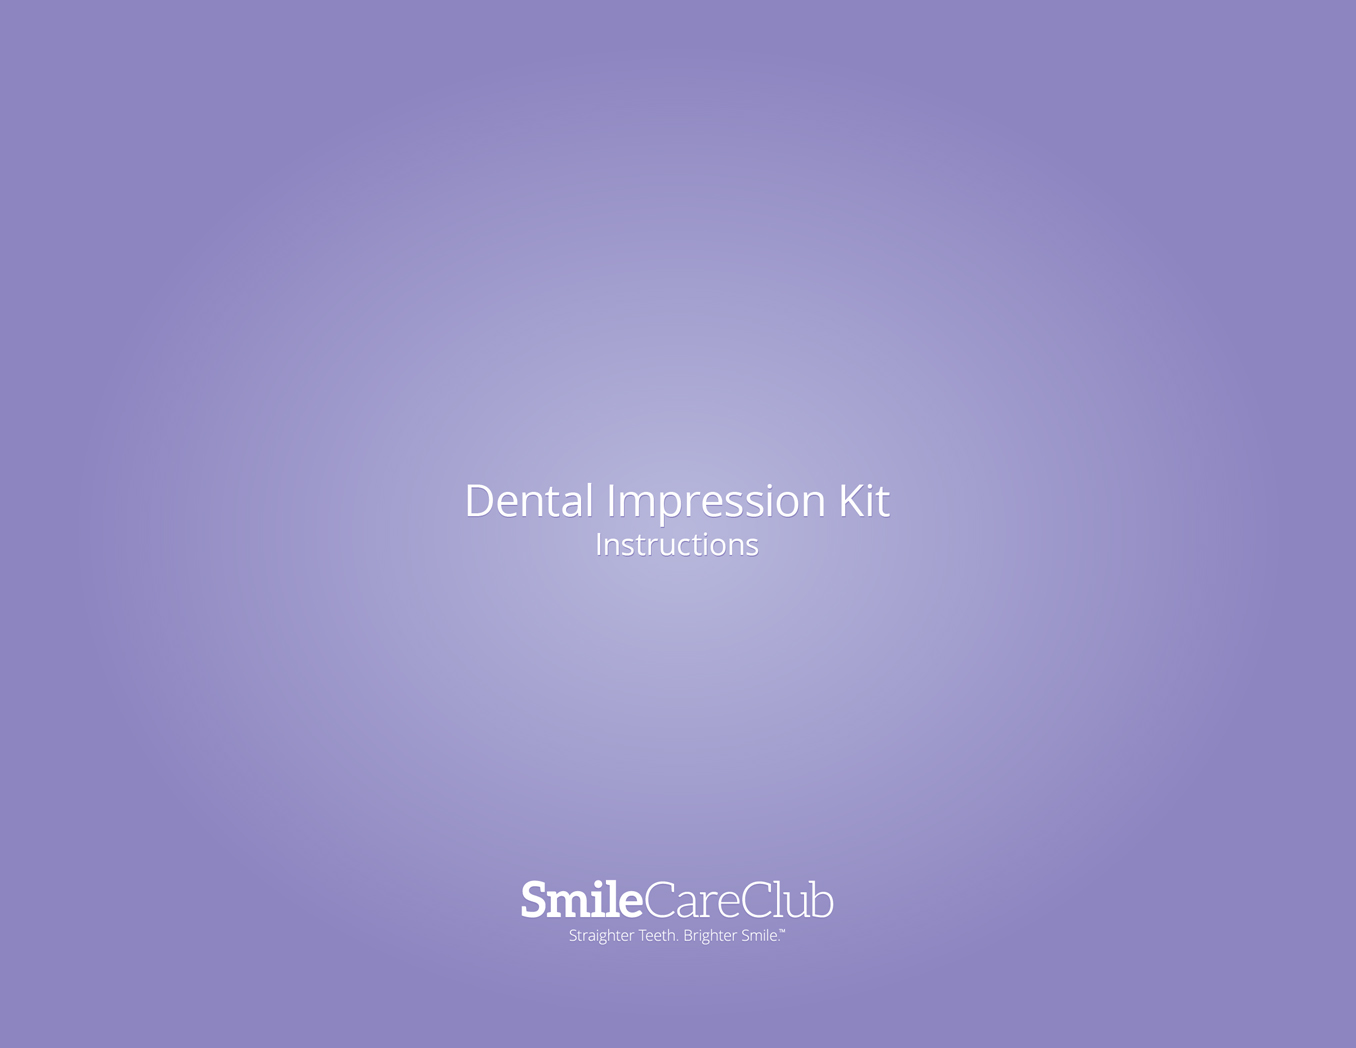 Smile Direct Dental Impression Kit